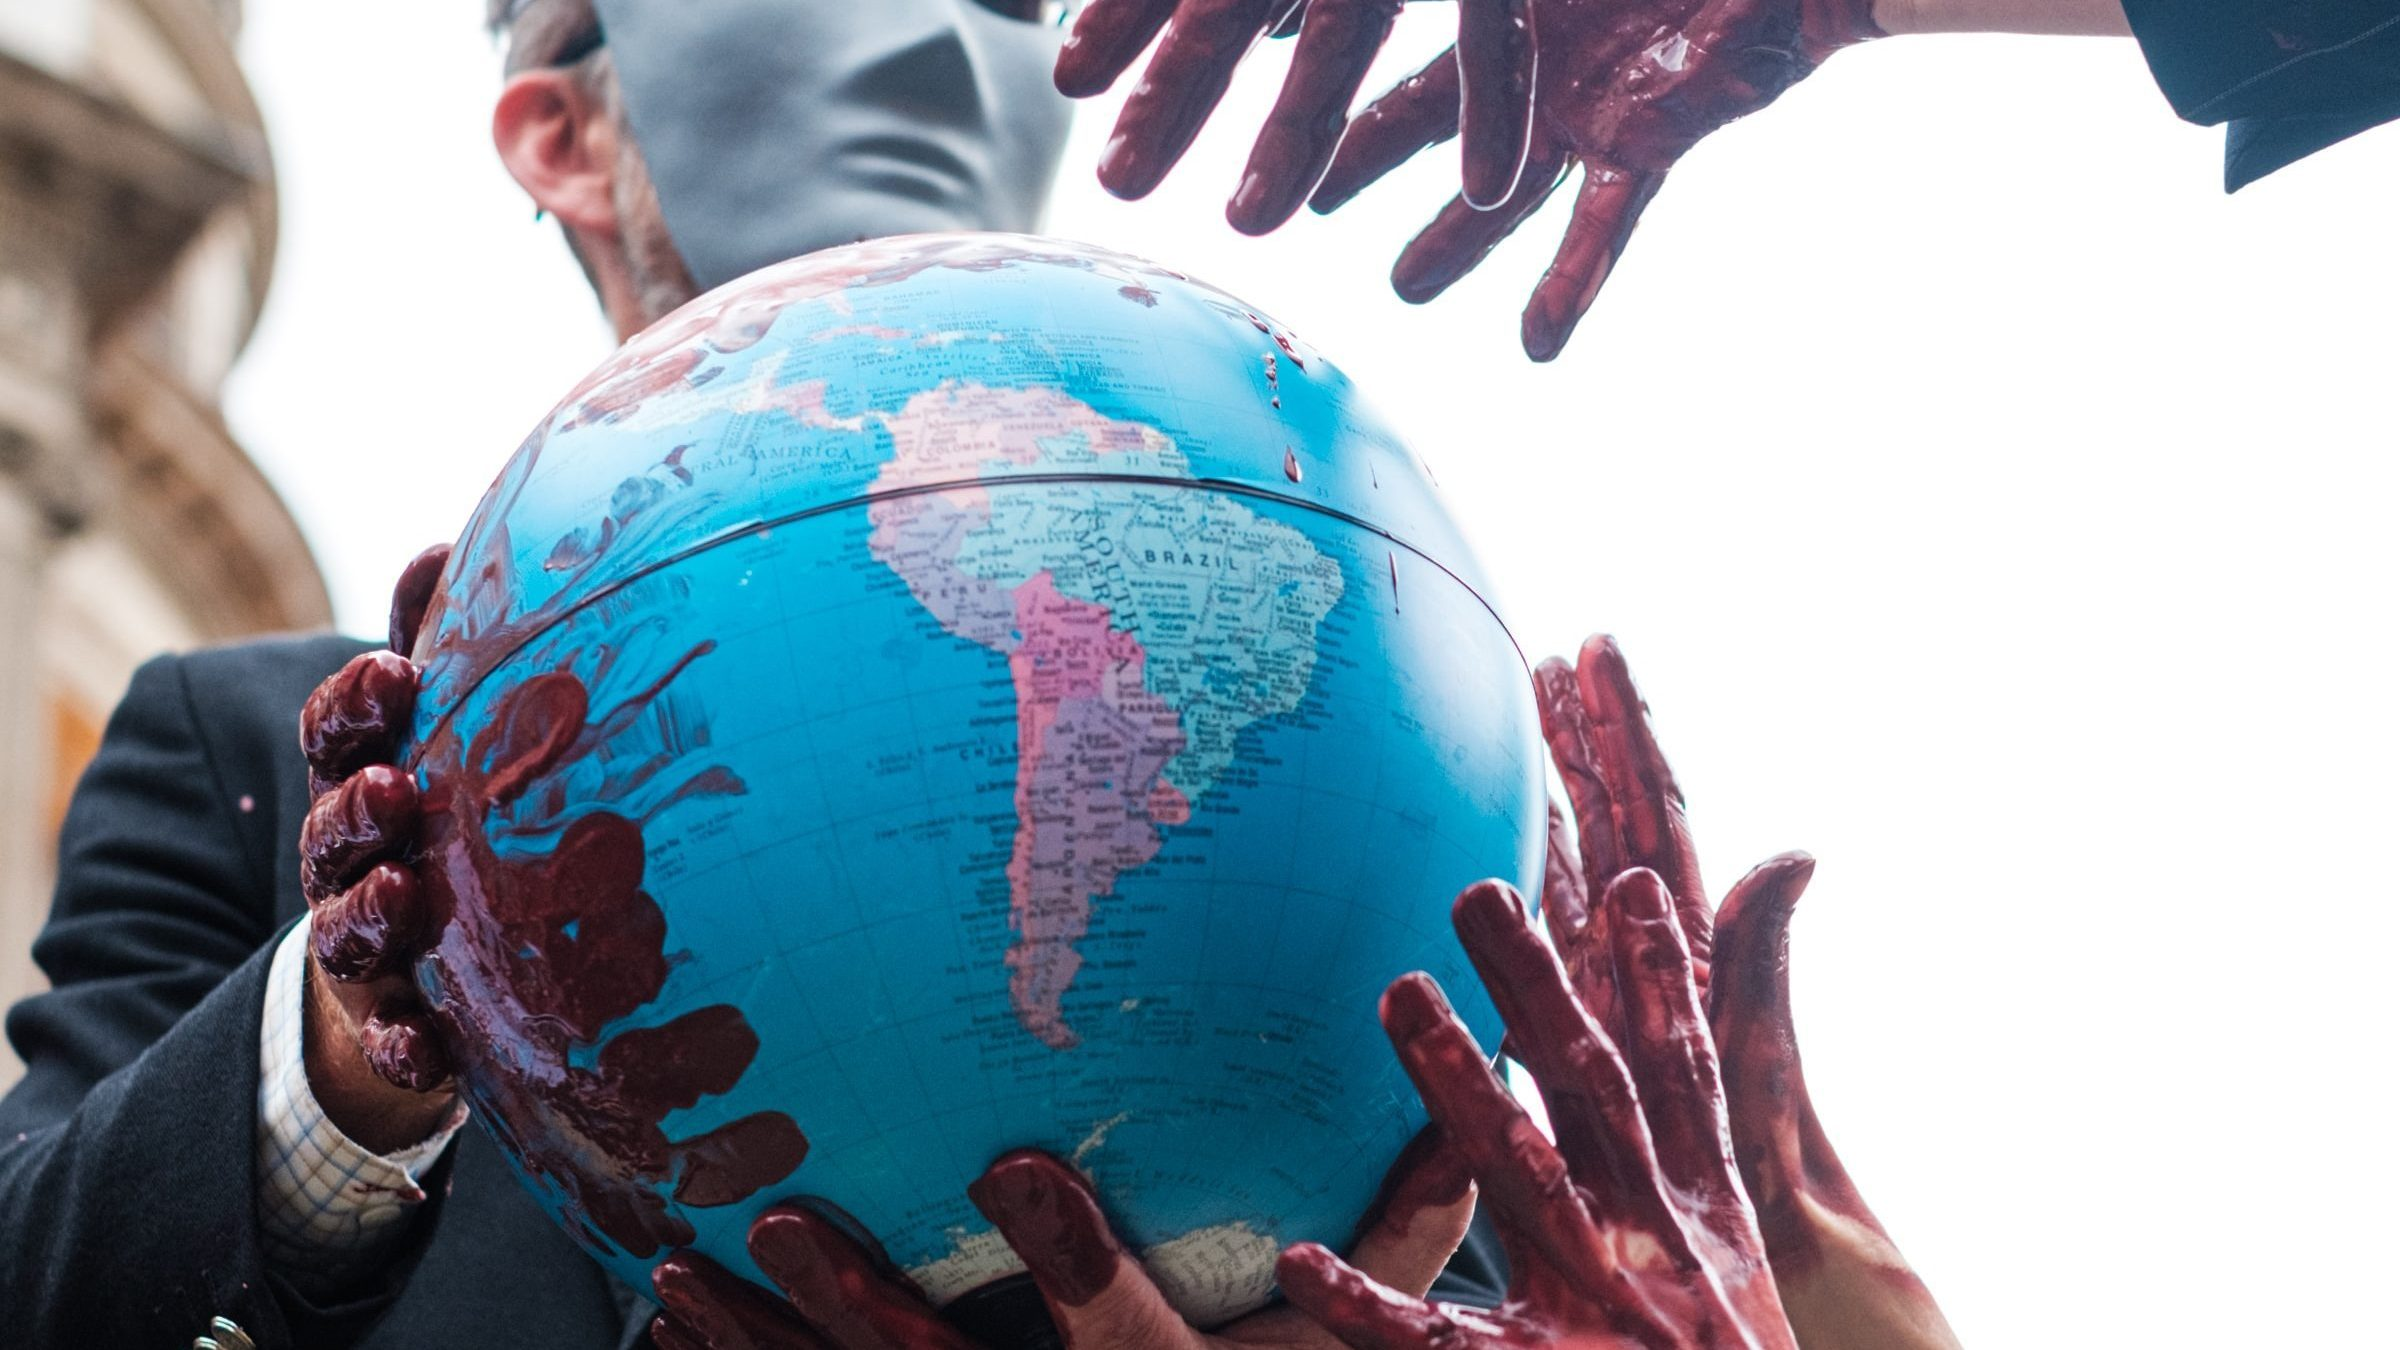 bloody hands reaching toward/ on globe of earth, masked man